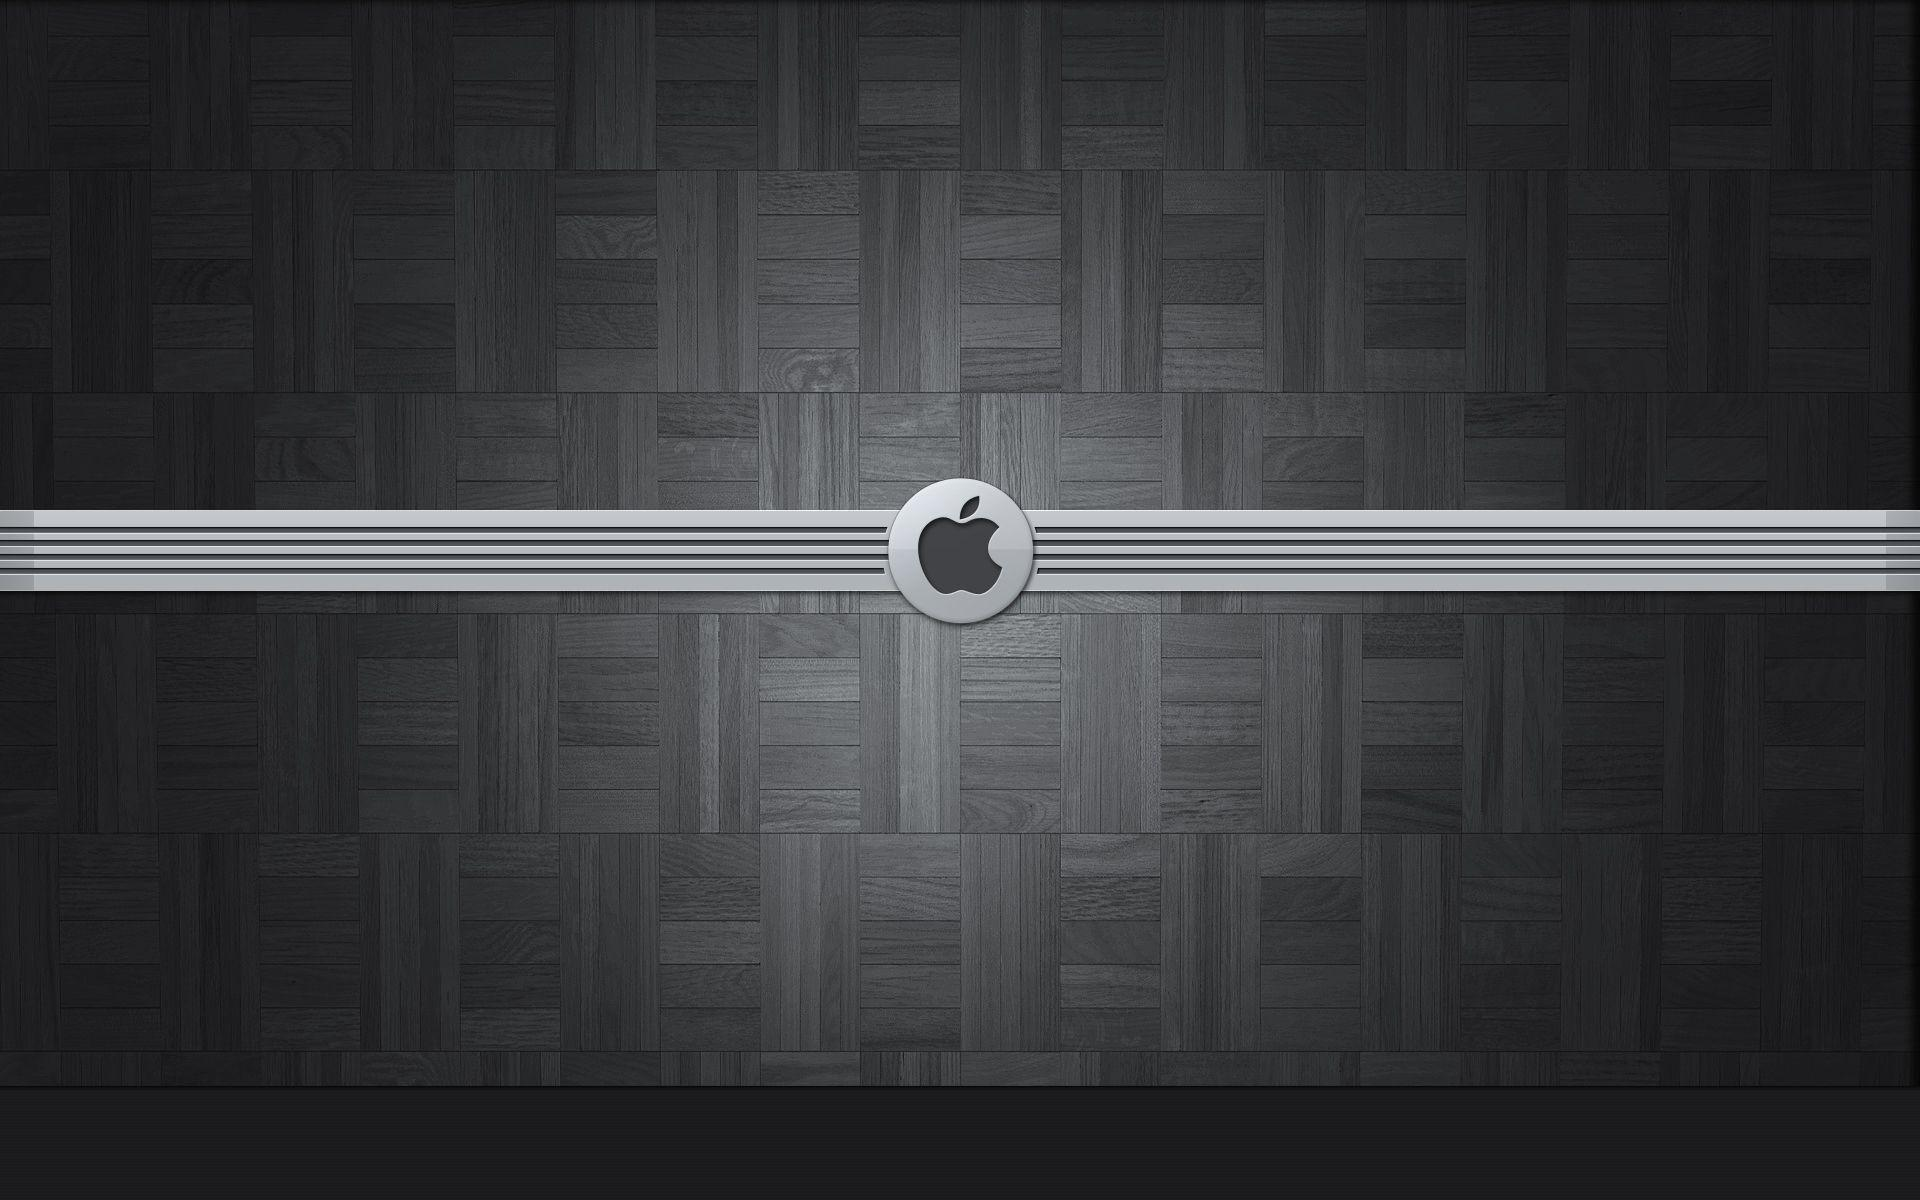 Apple Hd 1080p 2 Wallpapers and Backgrounds